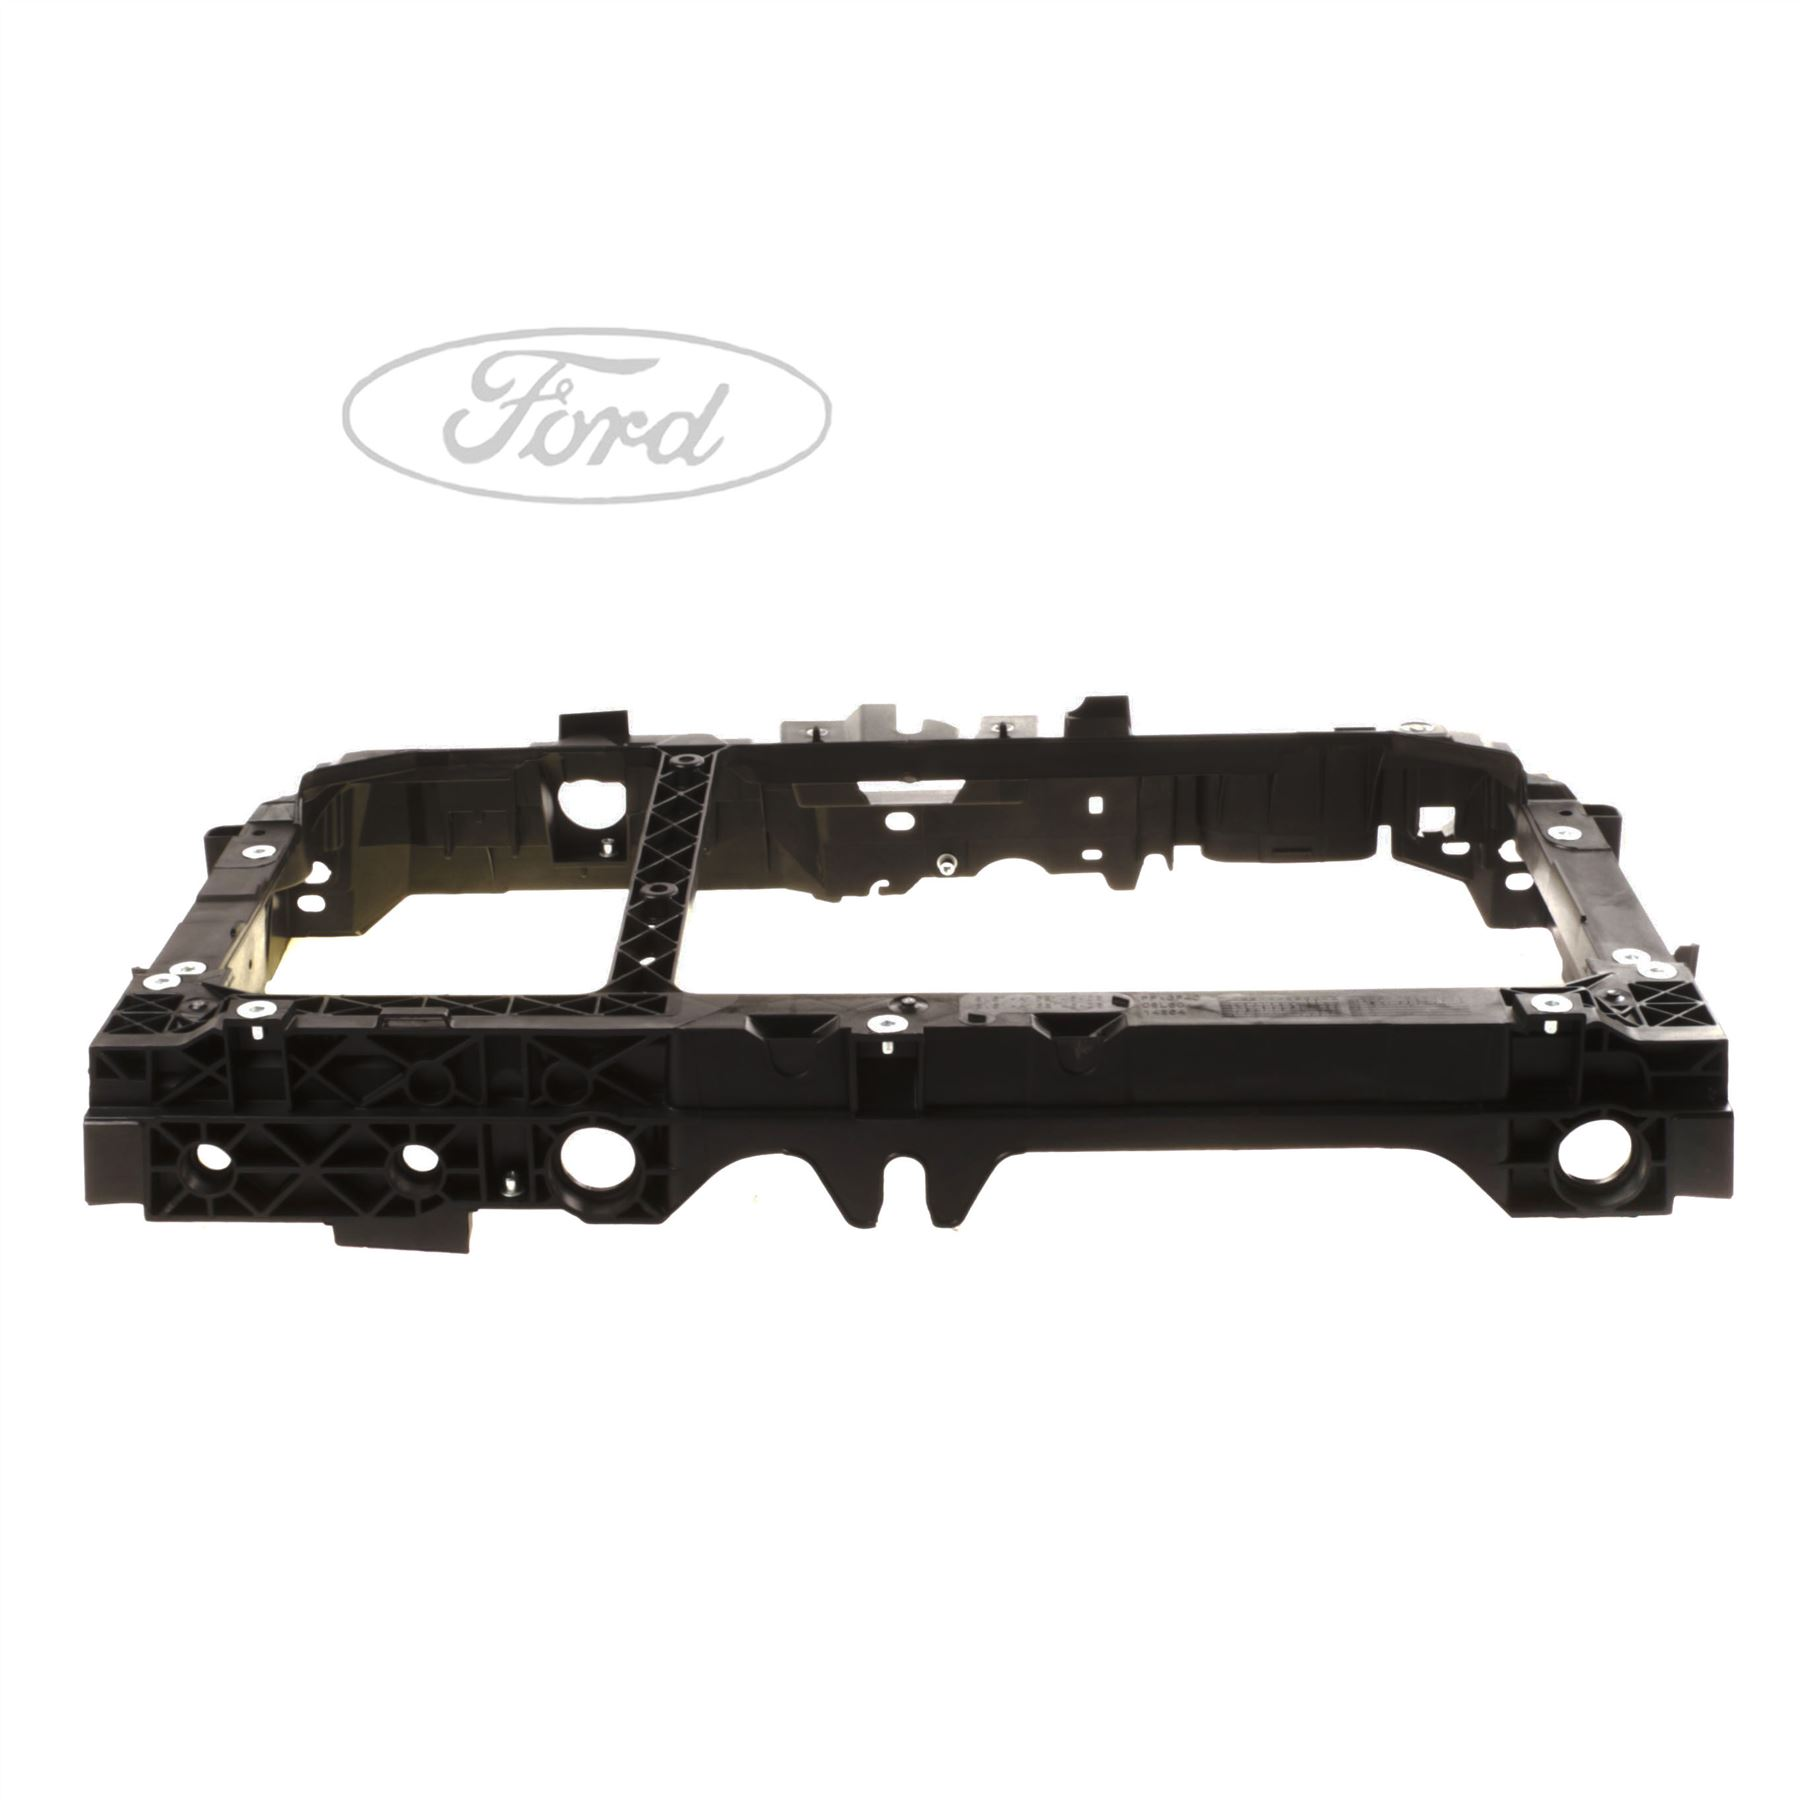 details about genuine ford fiesta mk7 front end body reinforcement panel  1800029